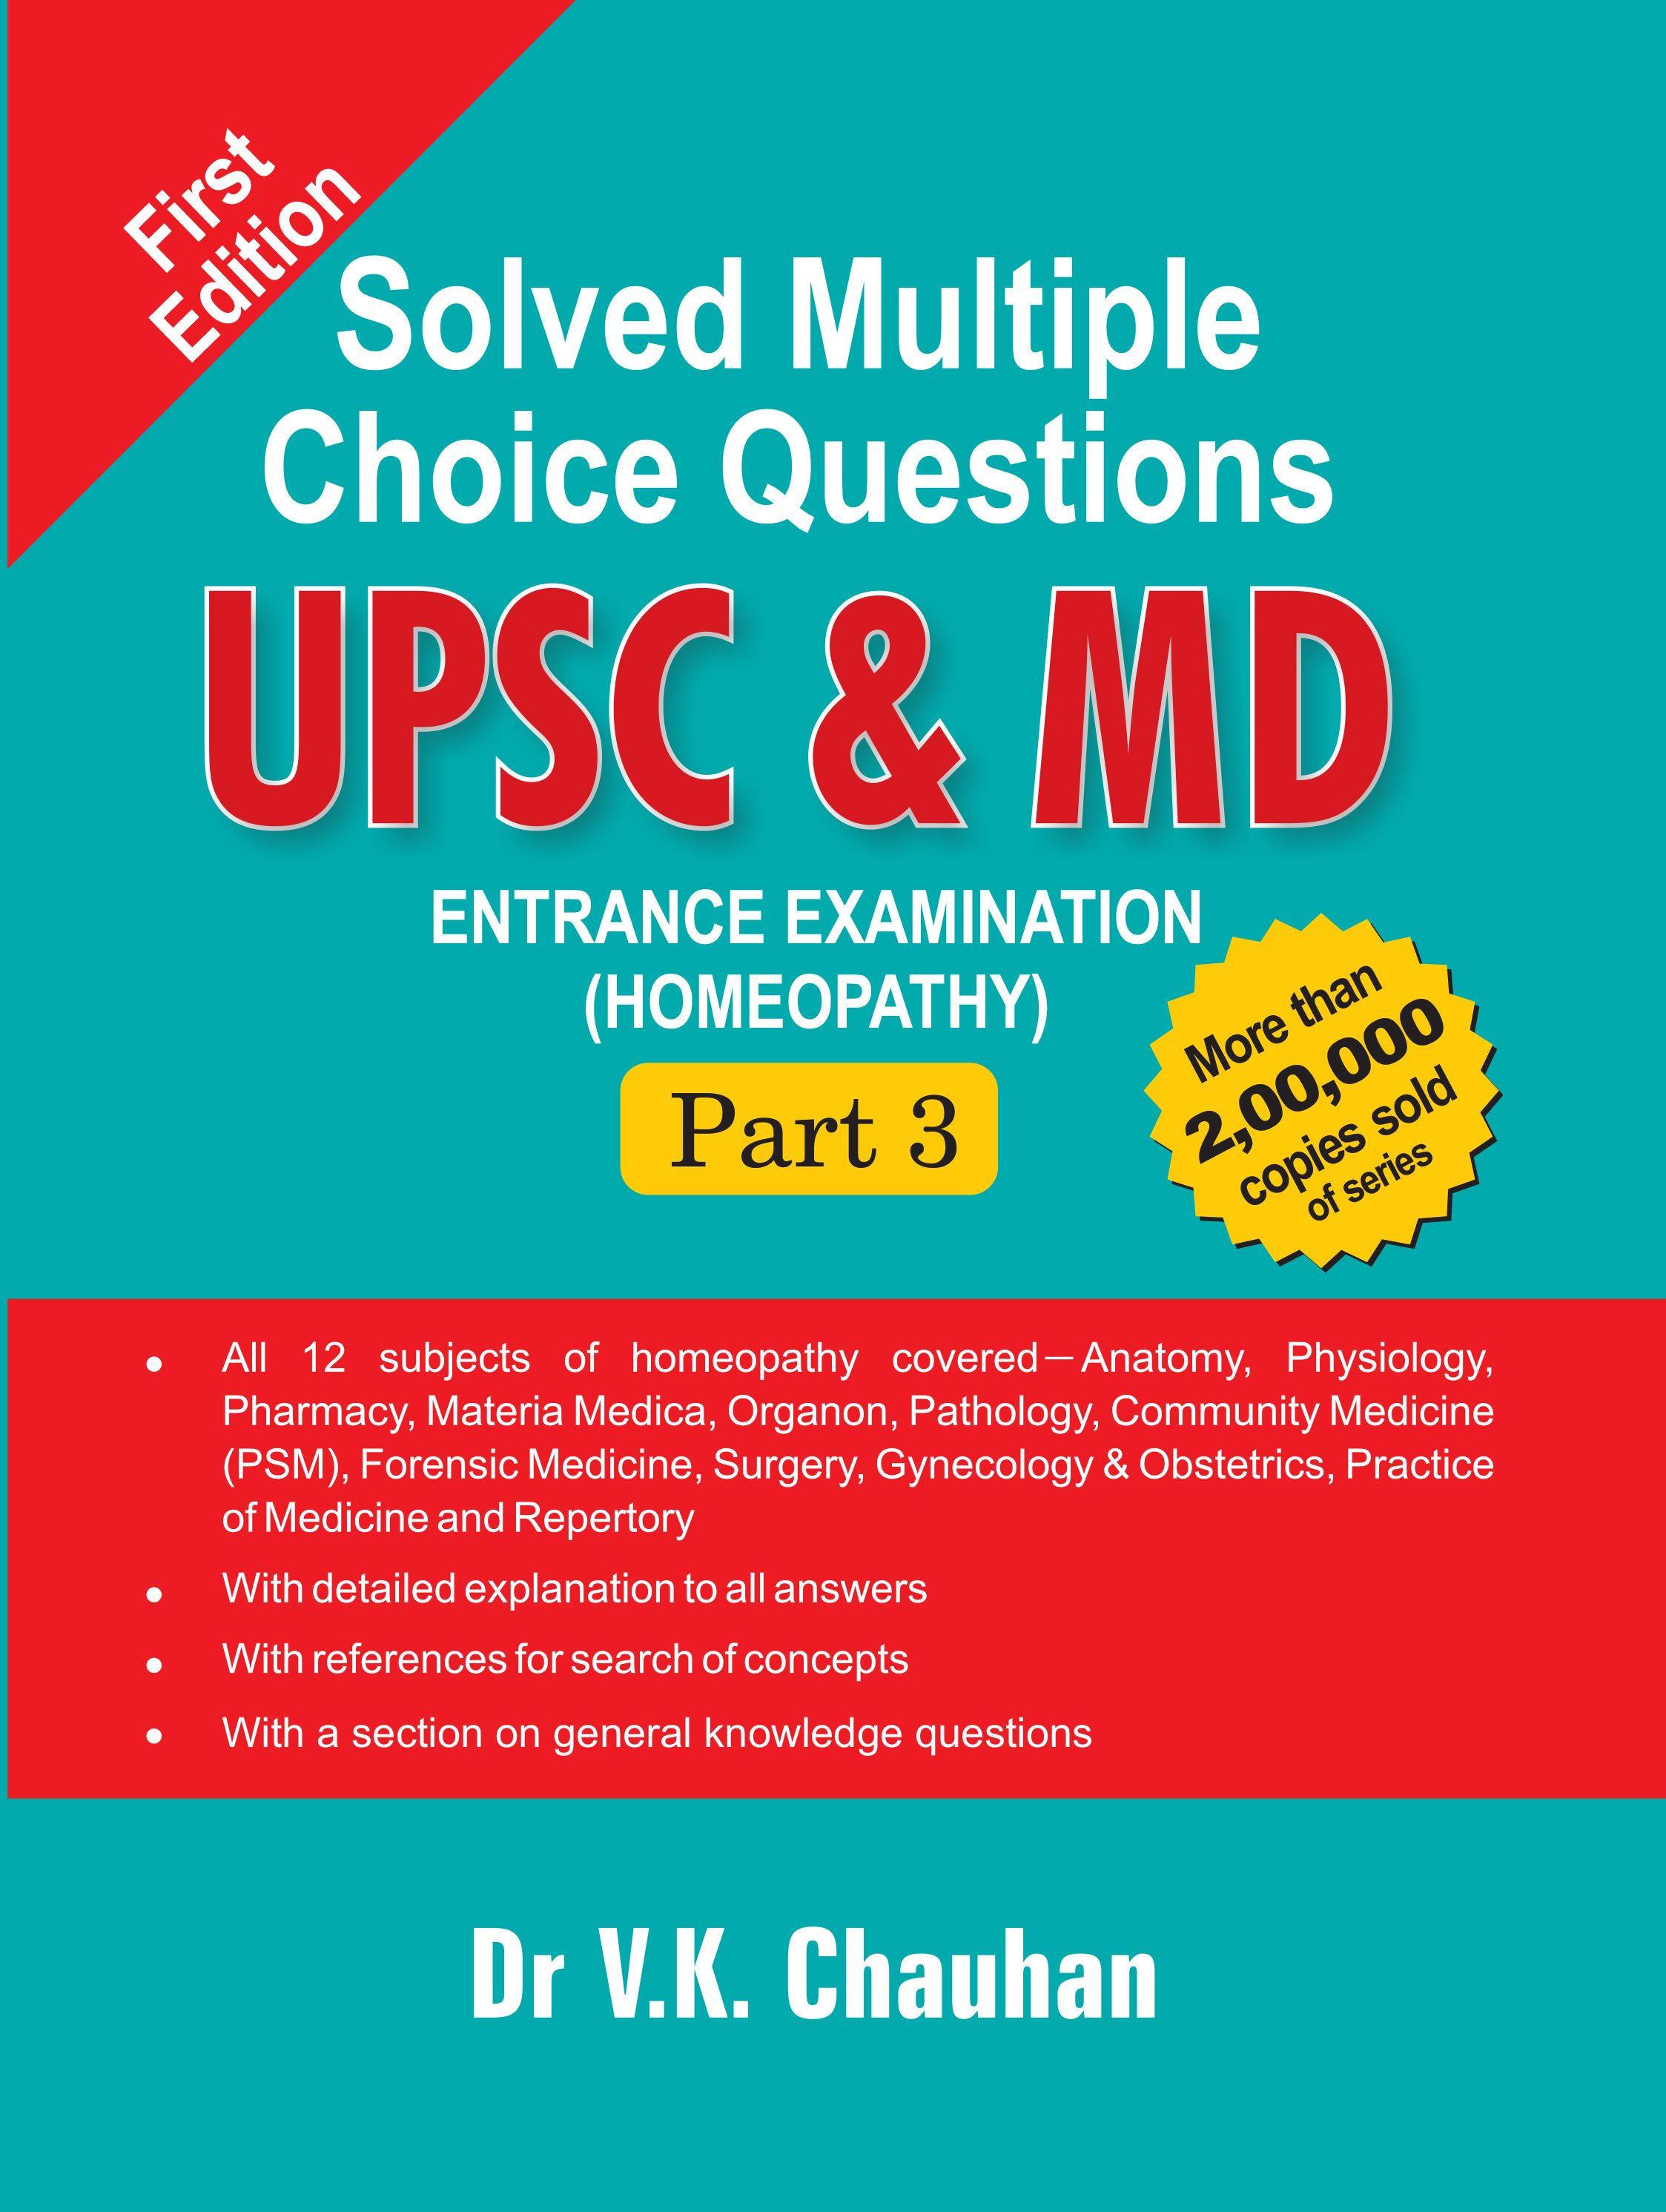 """Book review of """"Solved Multiple Choice Questions UPSC & MD Entrance ..."""